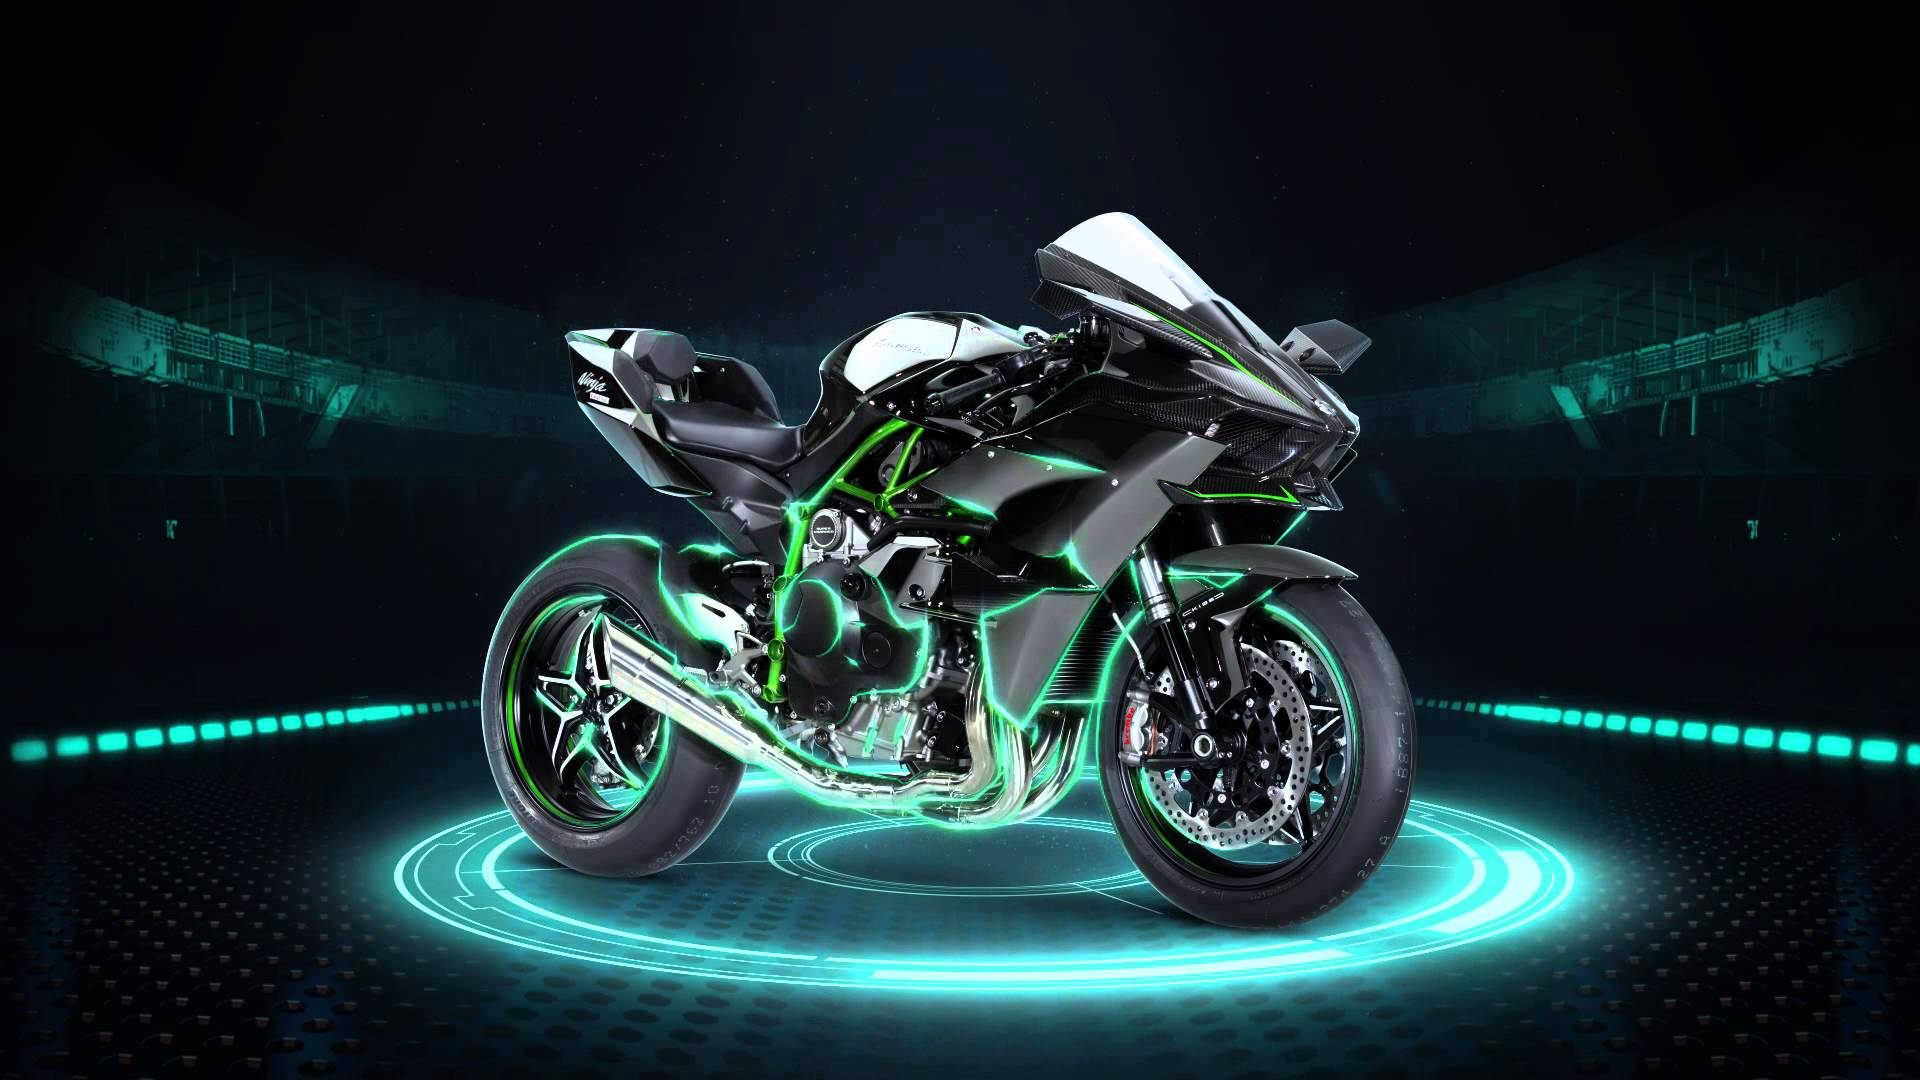 Kawasaki H2 Wallpapers Top Free Kawasaki H2 Backgrounds